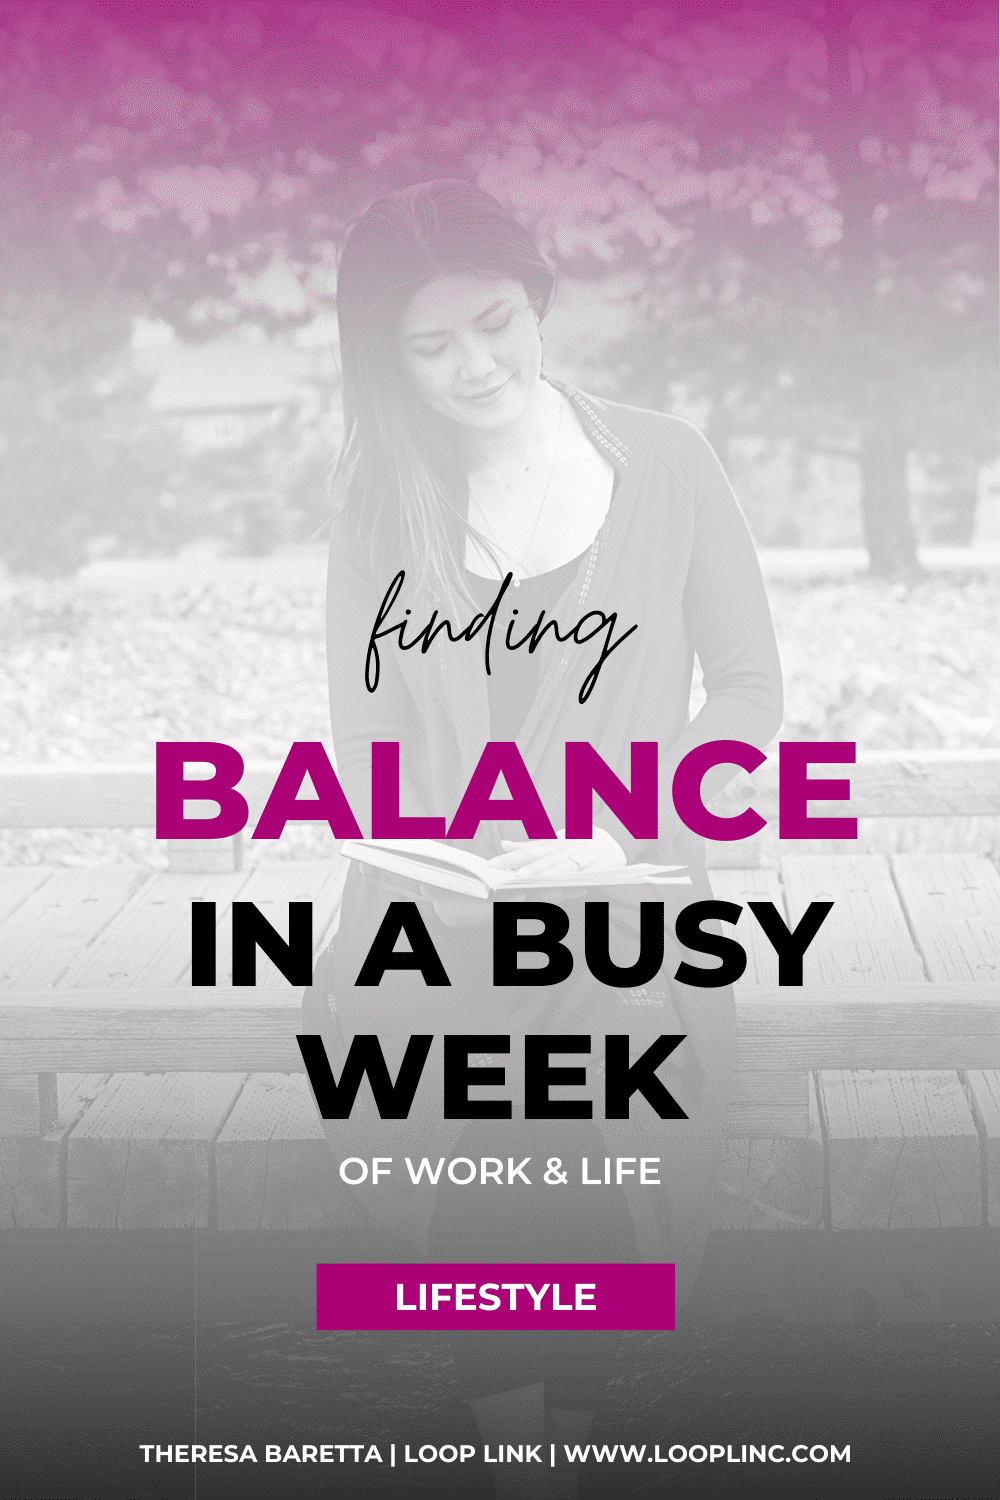 Finding Balance in a Busy Week of Work and Life